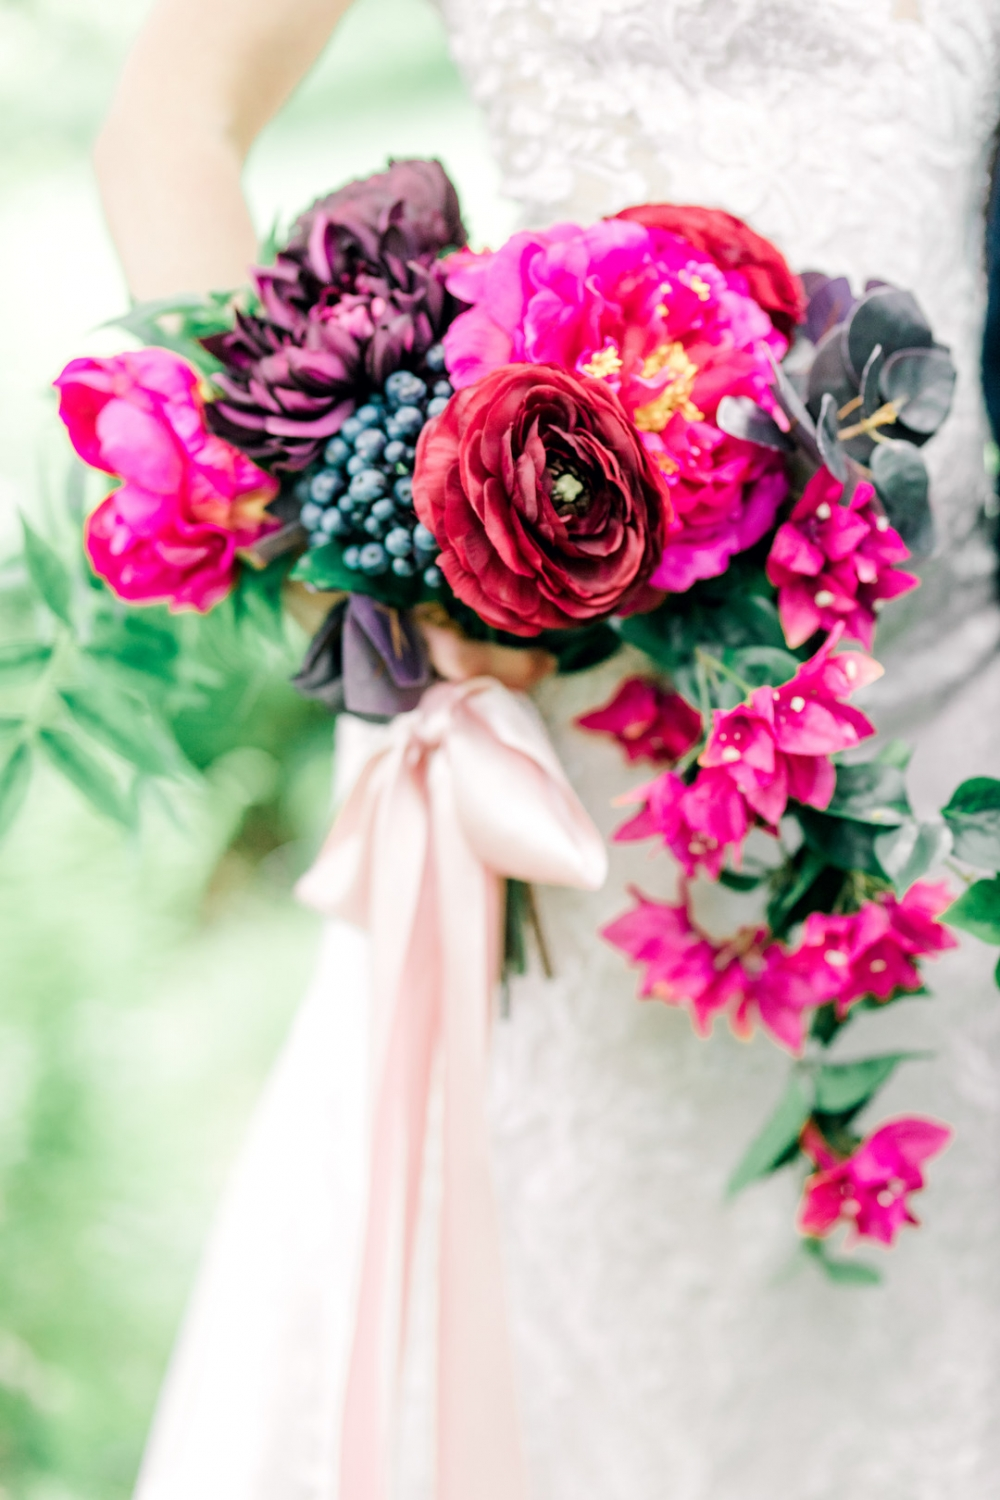 Gorgeous wedding bouquet with bright pink flowers